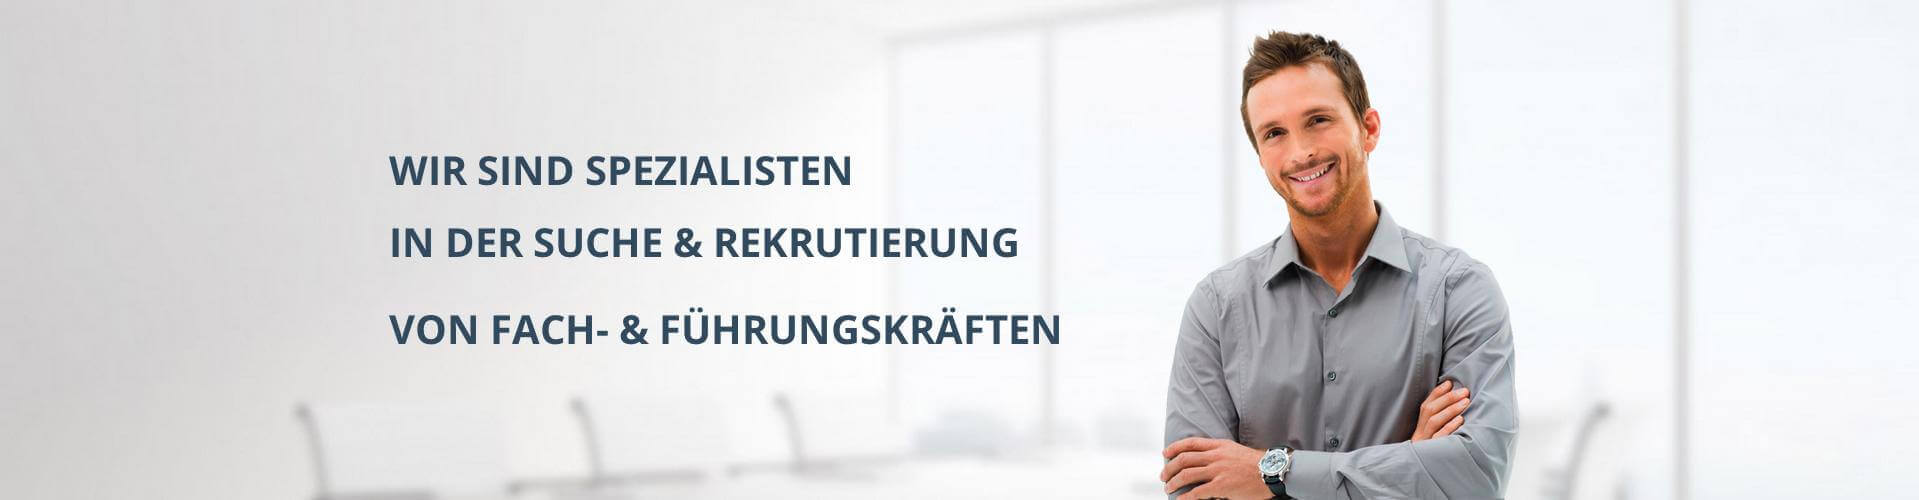 personalberatung - Homepage Startseite - ICONSULTING | Personalberatung, Recruiting, Executive Search in Stuttgart